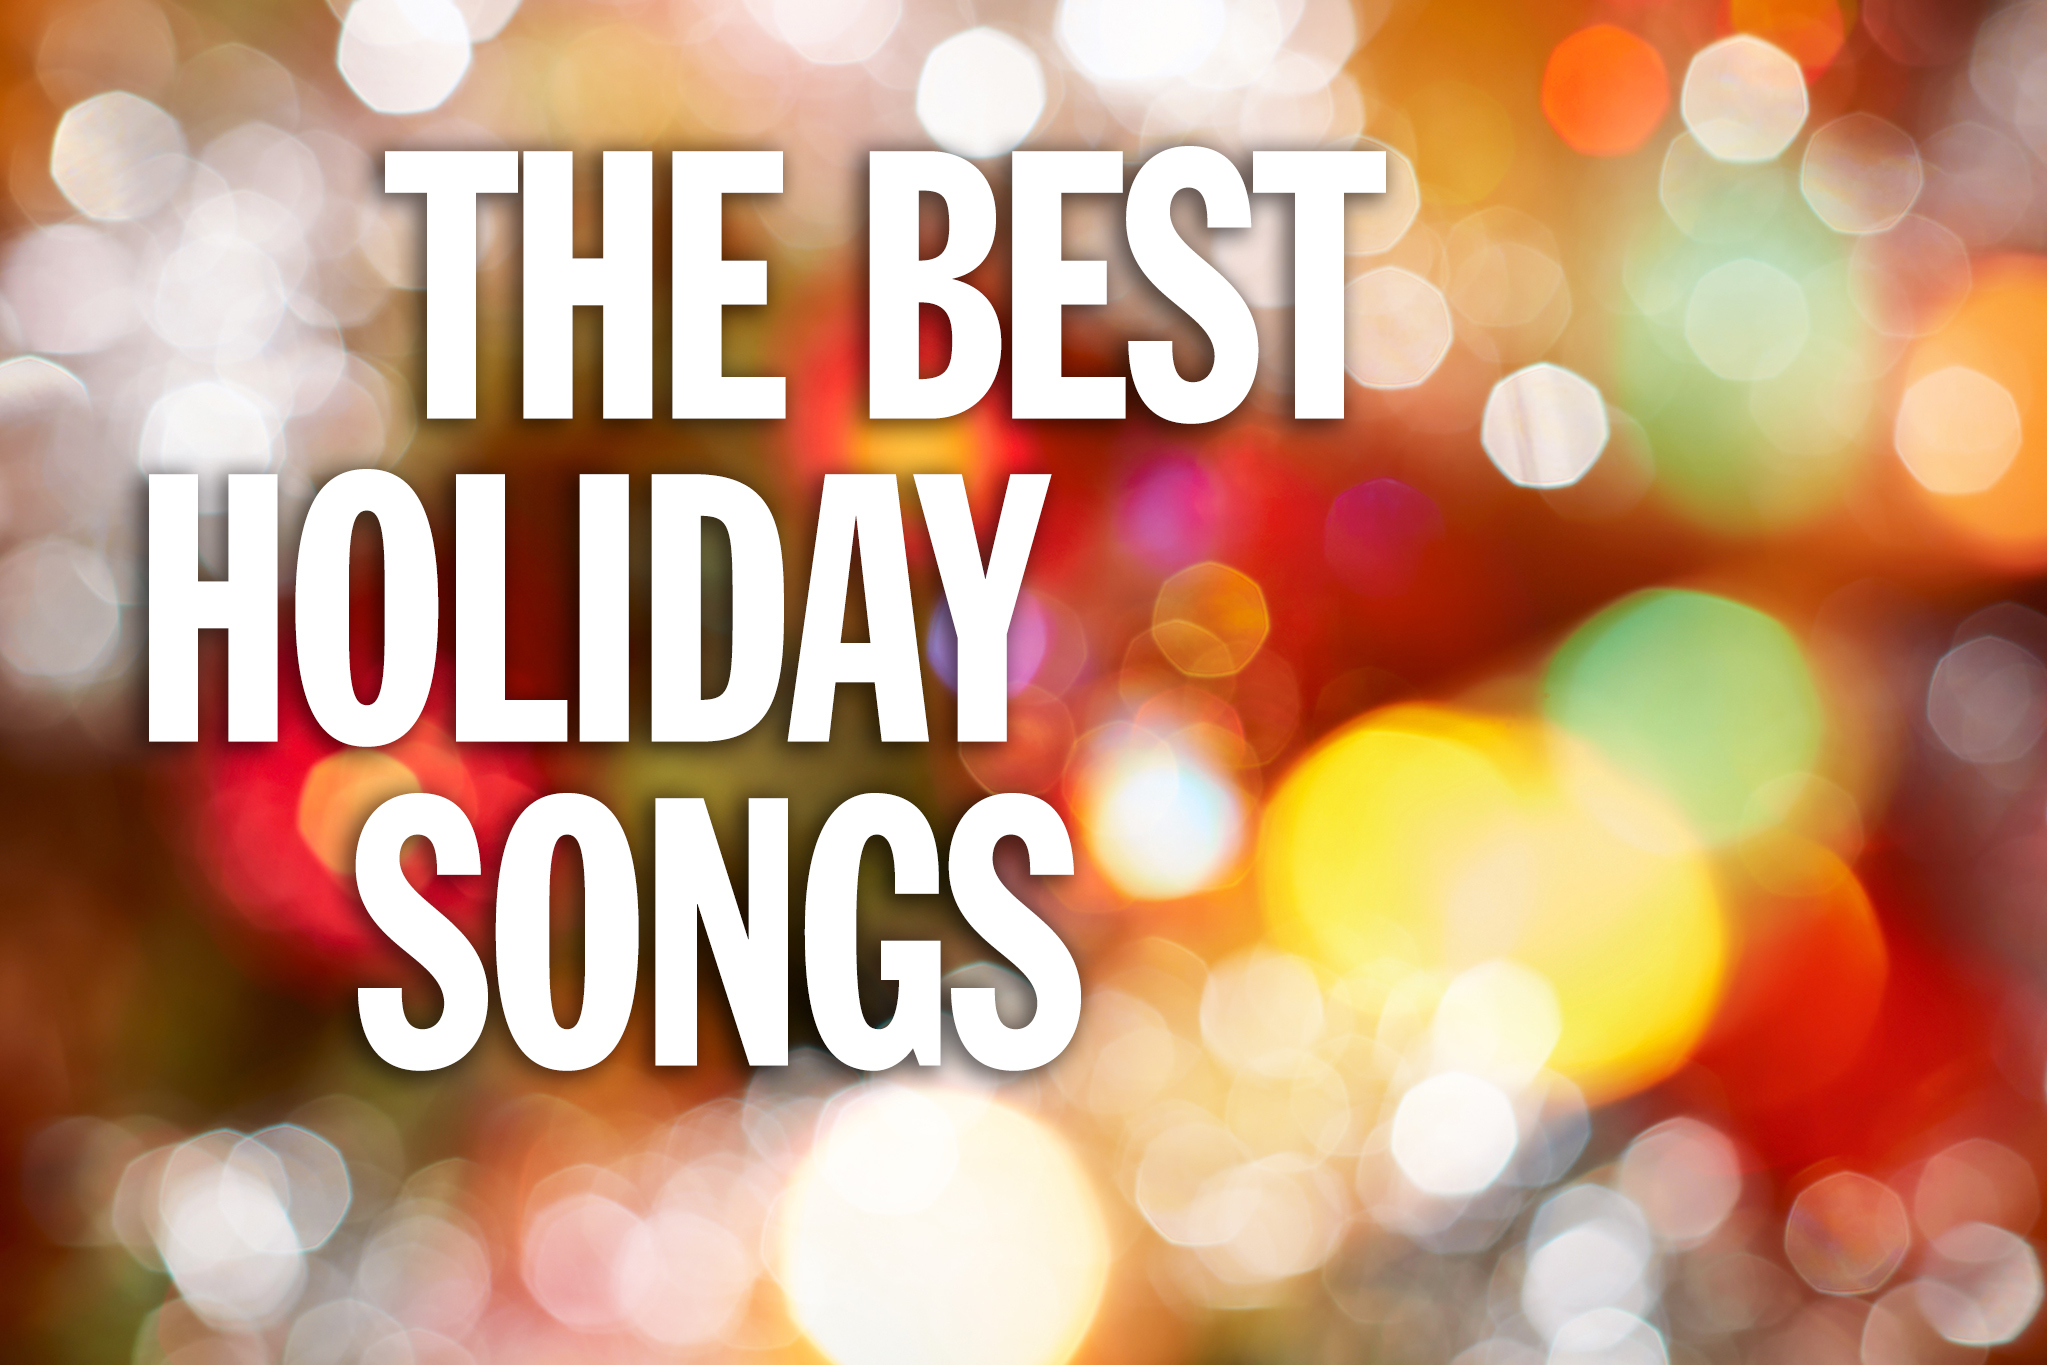 The best holiday songs